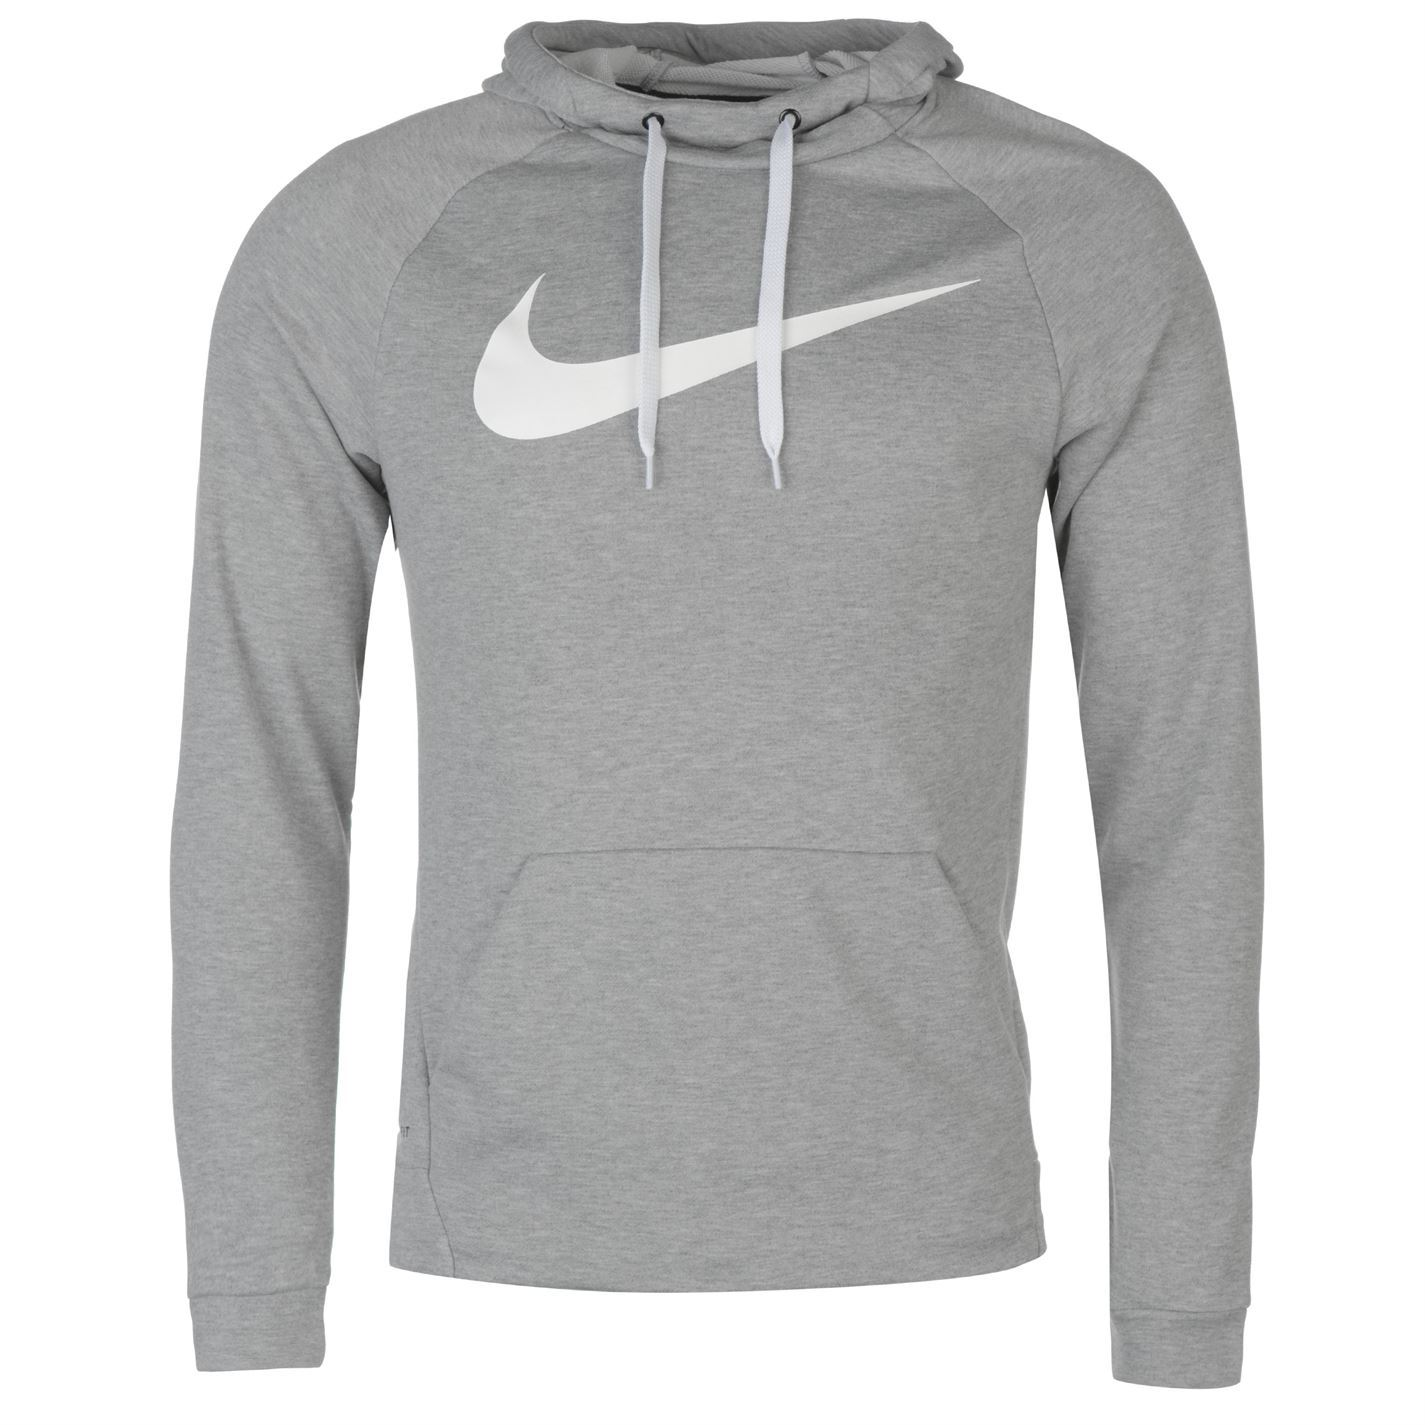 Nike-Dri-Fit-Swoosh-Pullover-Hoody-Mens-OTH-Hoodie-Sweatshirt-Sweater-Hooded-Top thumbnail 15